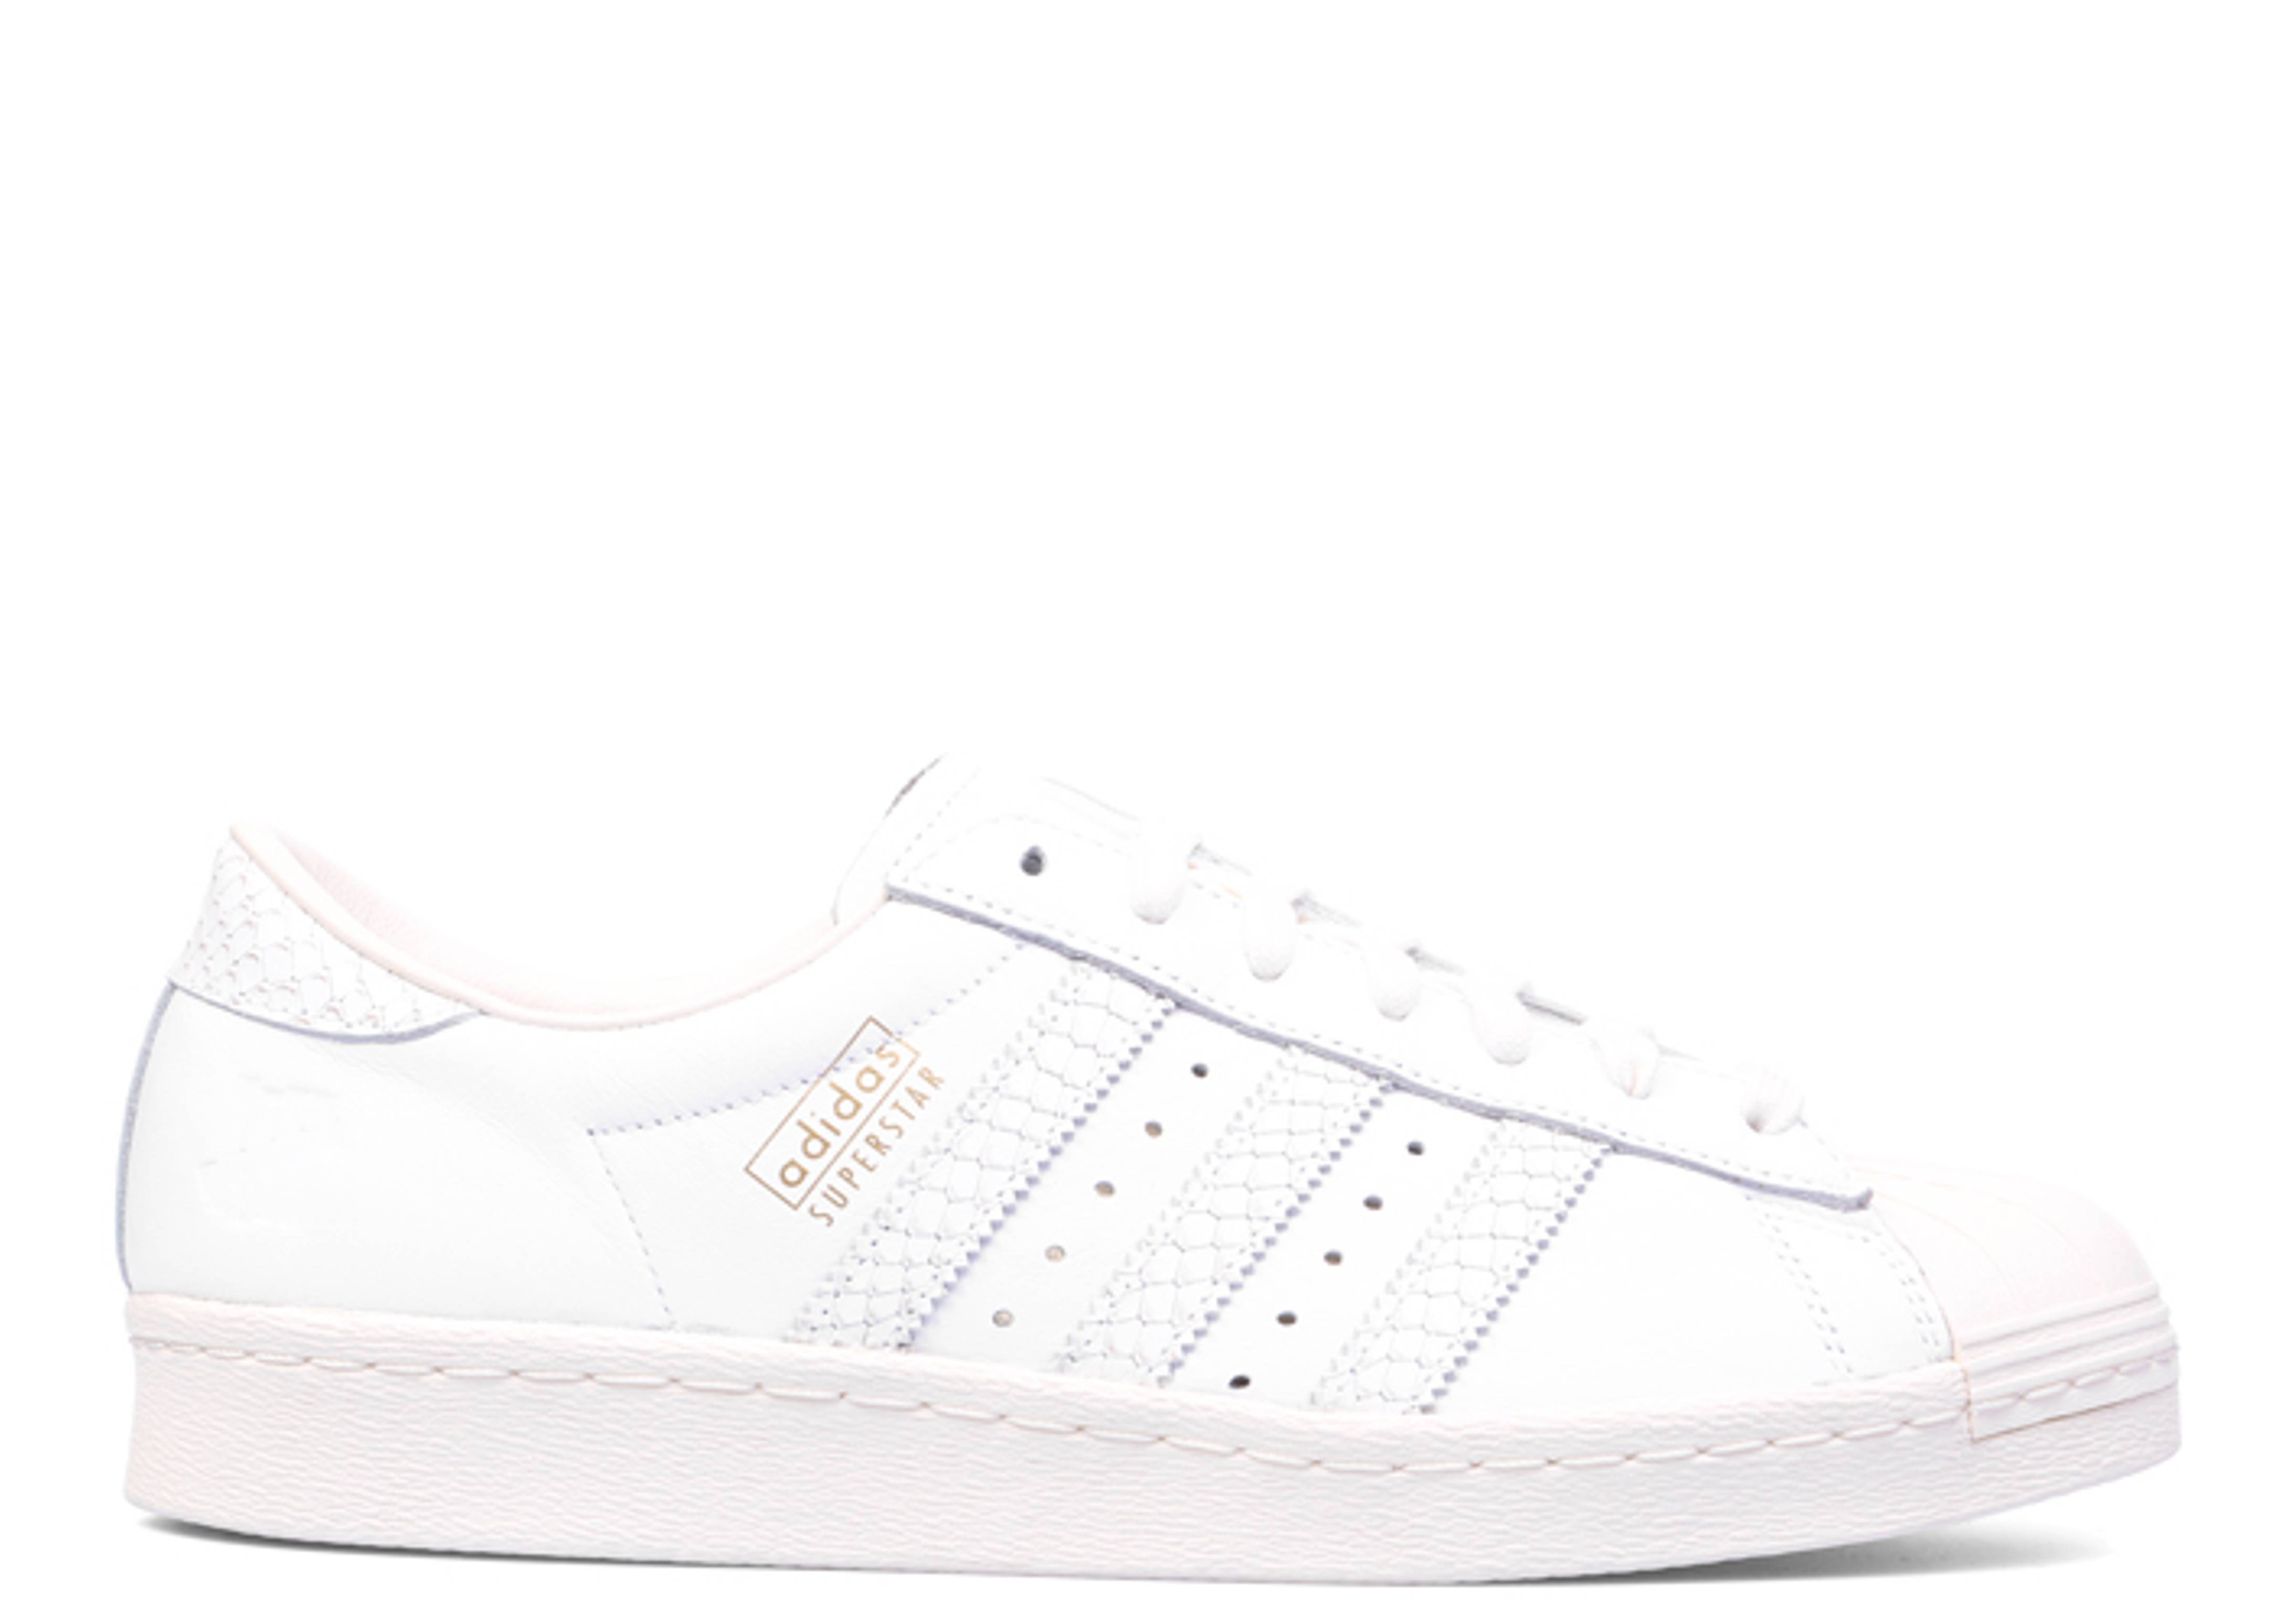 Adidas Men's SuperStar 80V-UNDFTD White B34077